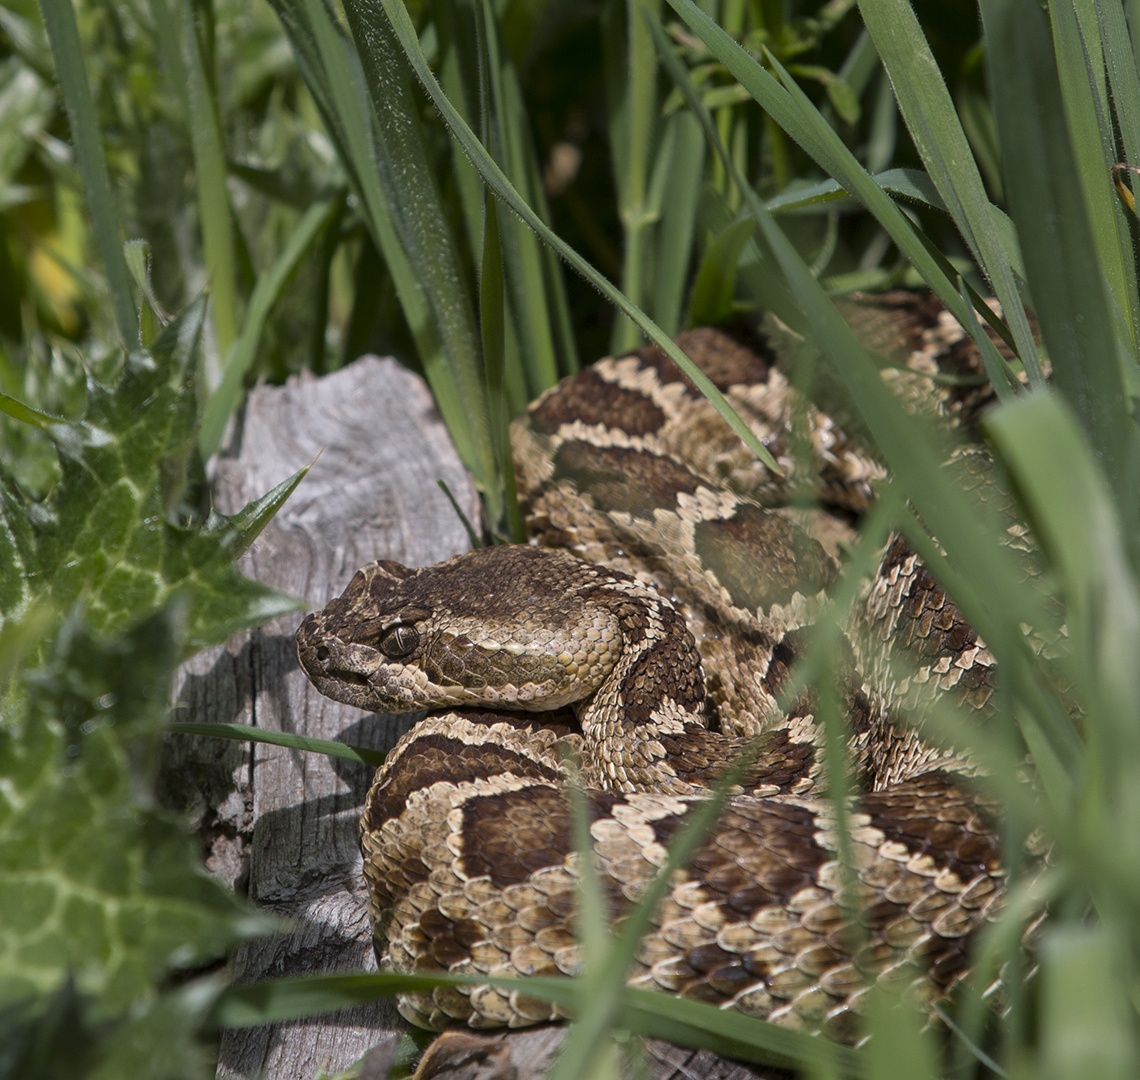 North American rattlesnakes are part of the ecosystem at Effie Yeaw ...